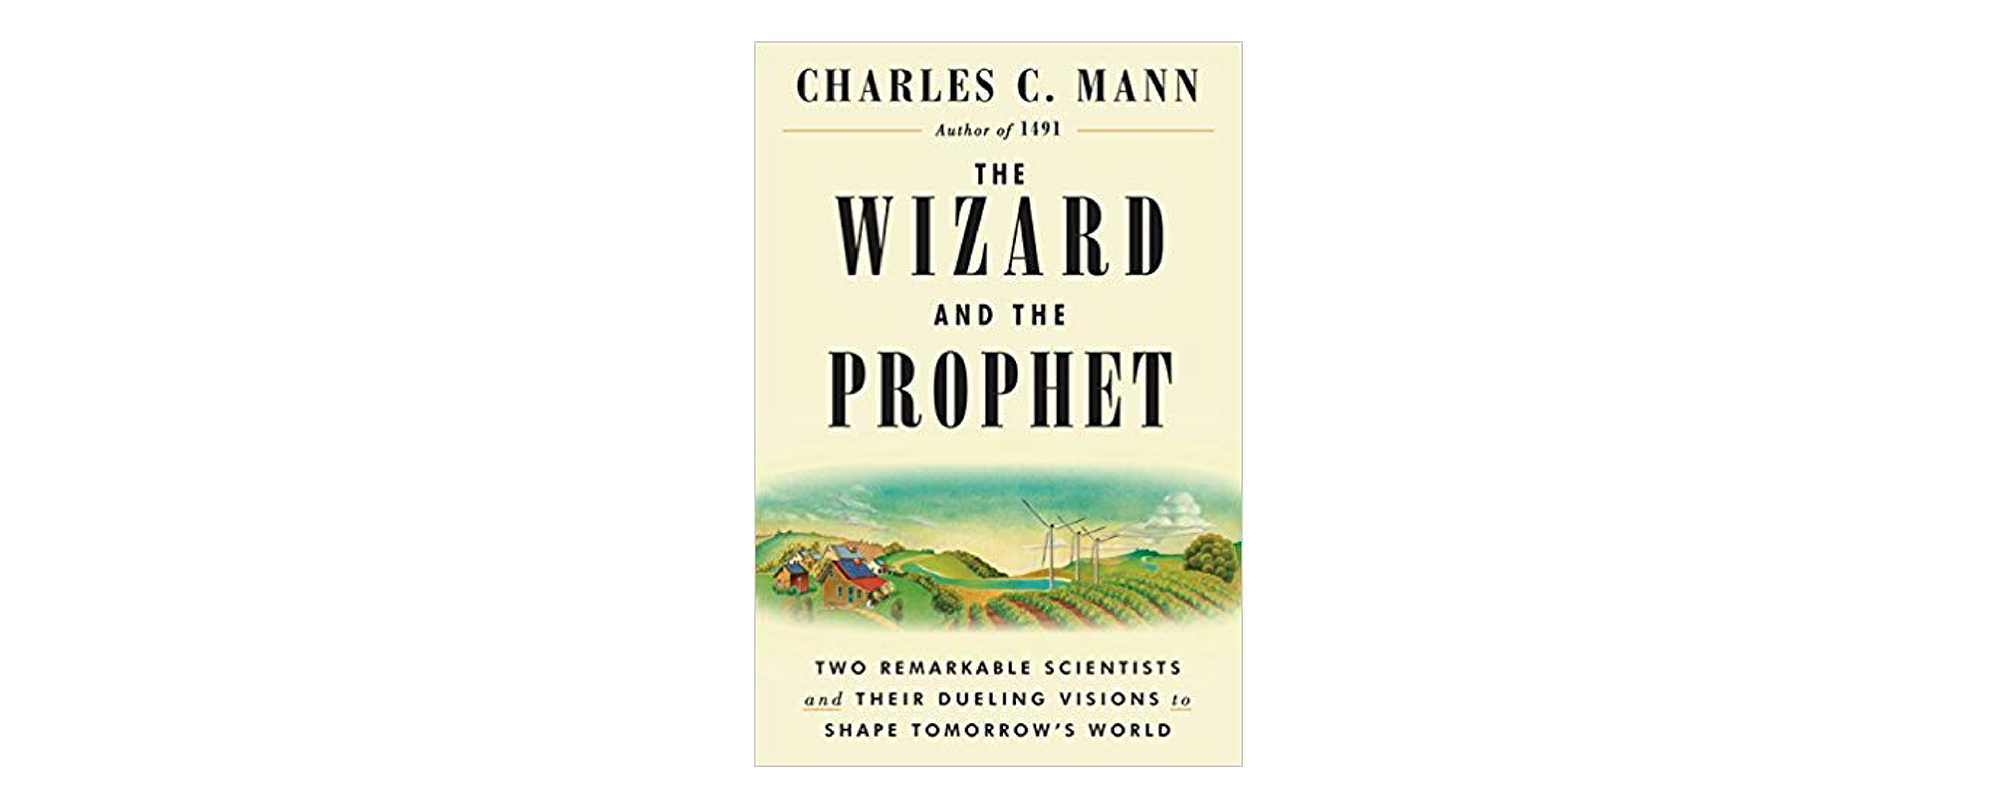 The Wizard and the Prophet: Two Remarkable Scientists and Their Dueling Visions to Shape Tomorrow's World by Charles Mann